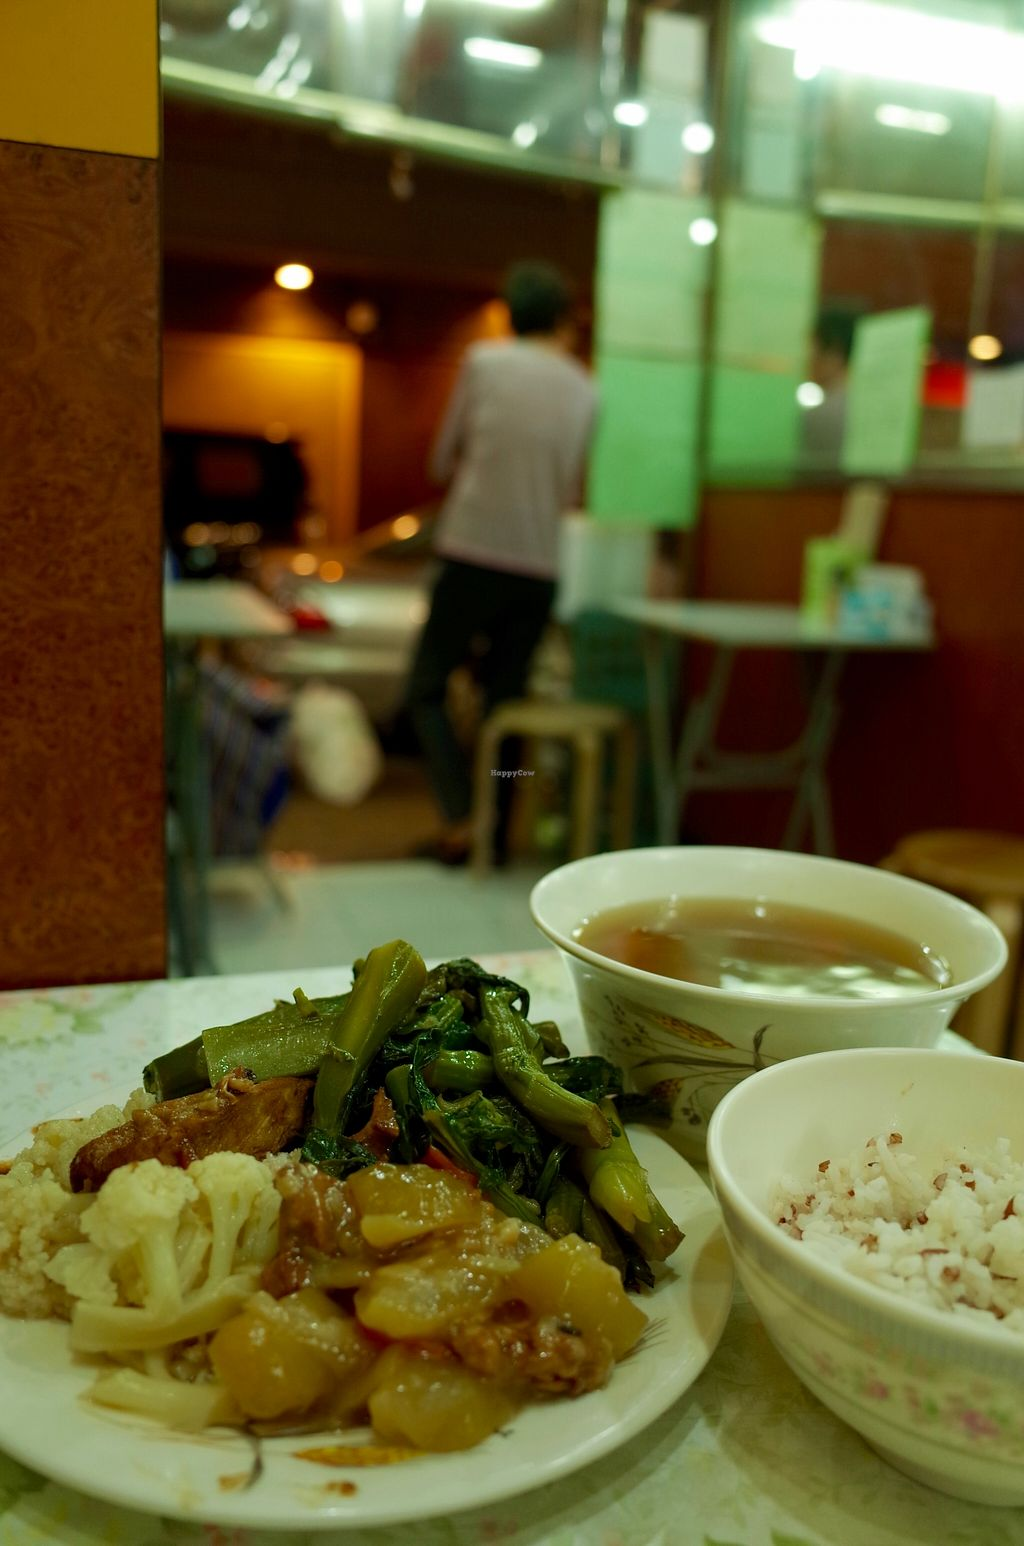 """Photo of Kam Heung Vegetarian - Fortress Hill  by <a href=""""/members/profile/ouikouik"""">ouikouik</a> <br/>dinner <br/> October 31, 2015  - <a href='/contact/abuse/image/48002/123340'>Report</a>"""